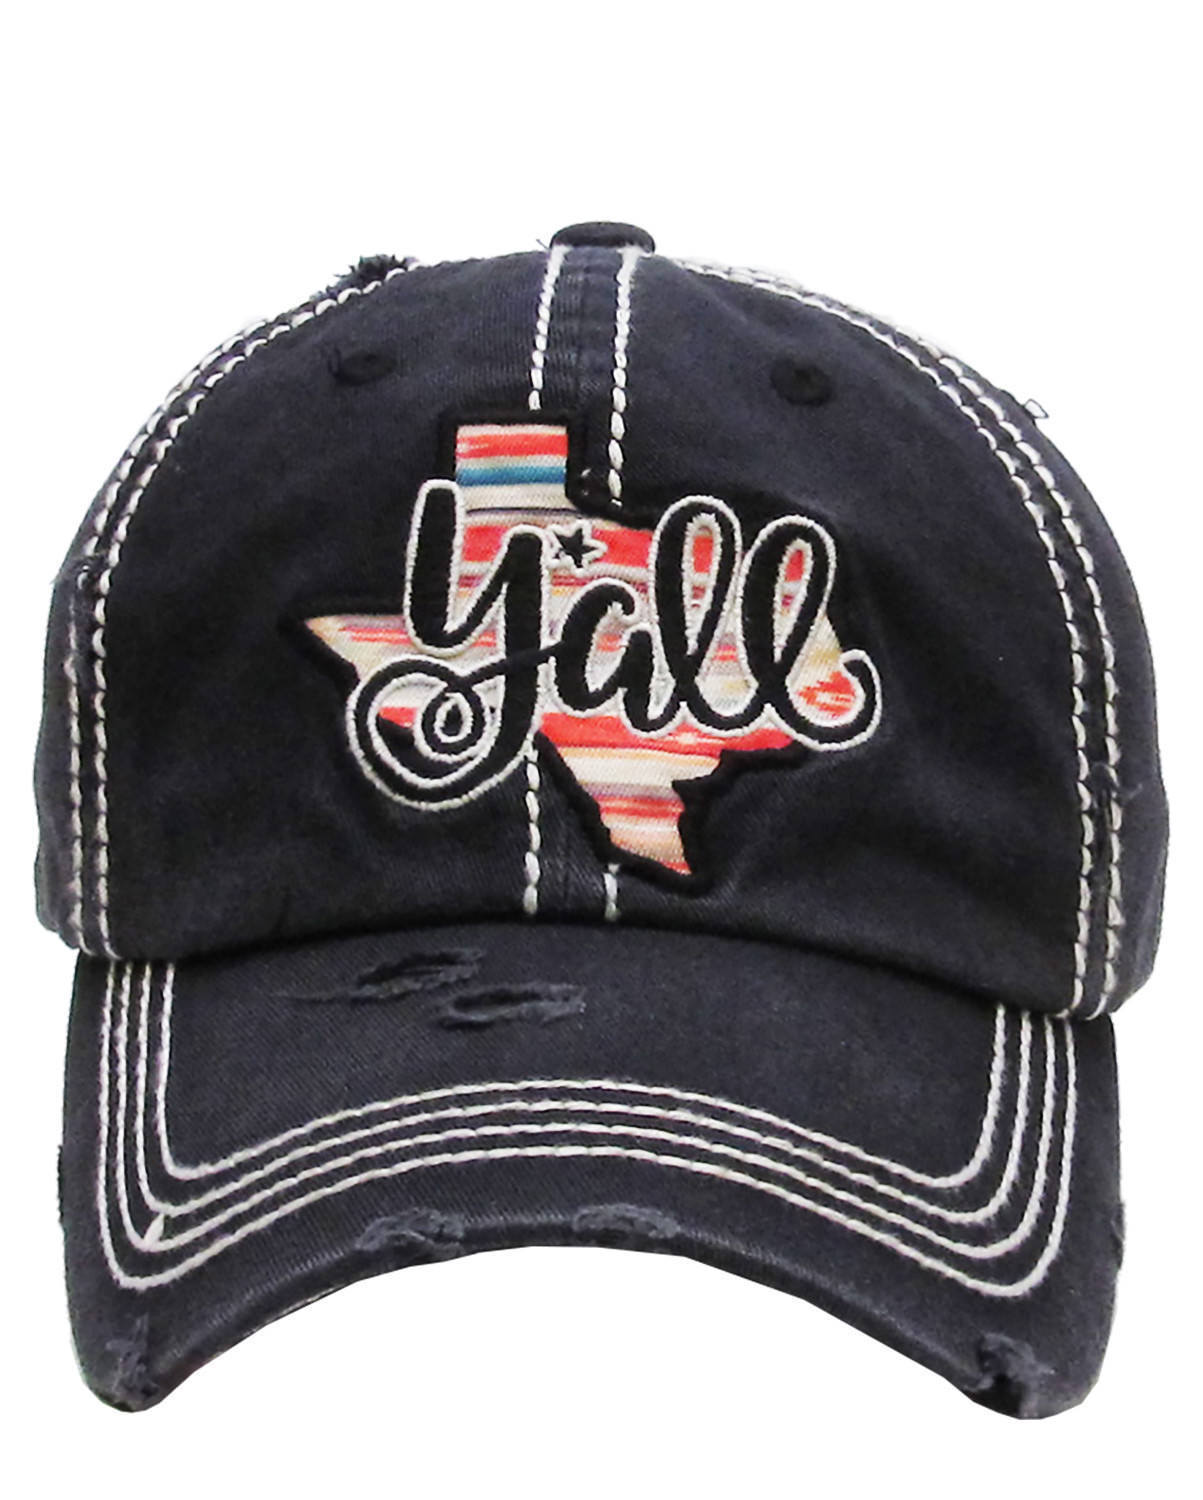 Distressed Embroidered Texas State Y'all Baseball Hat Vintage Style